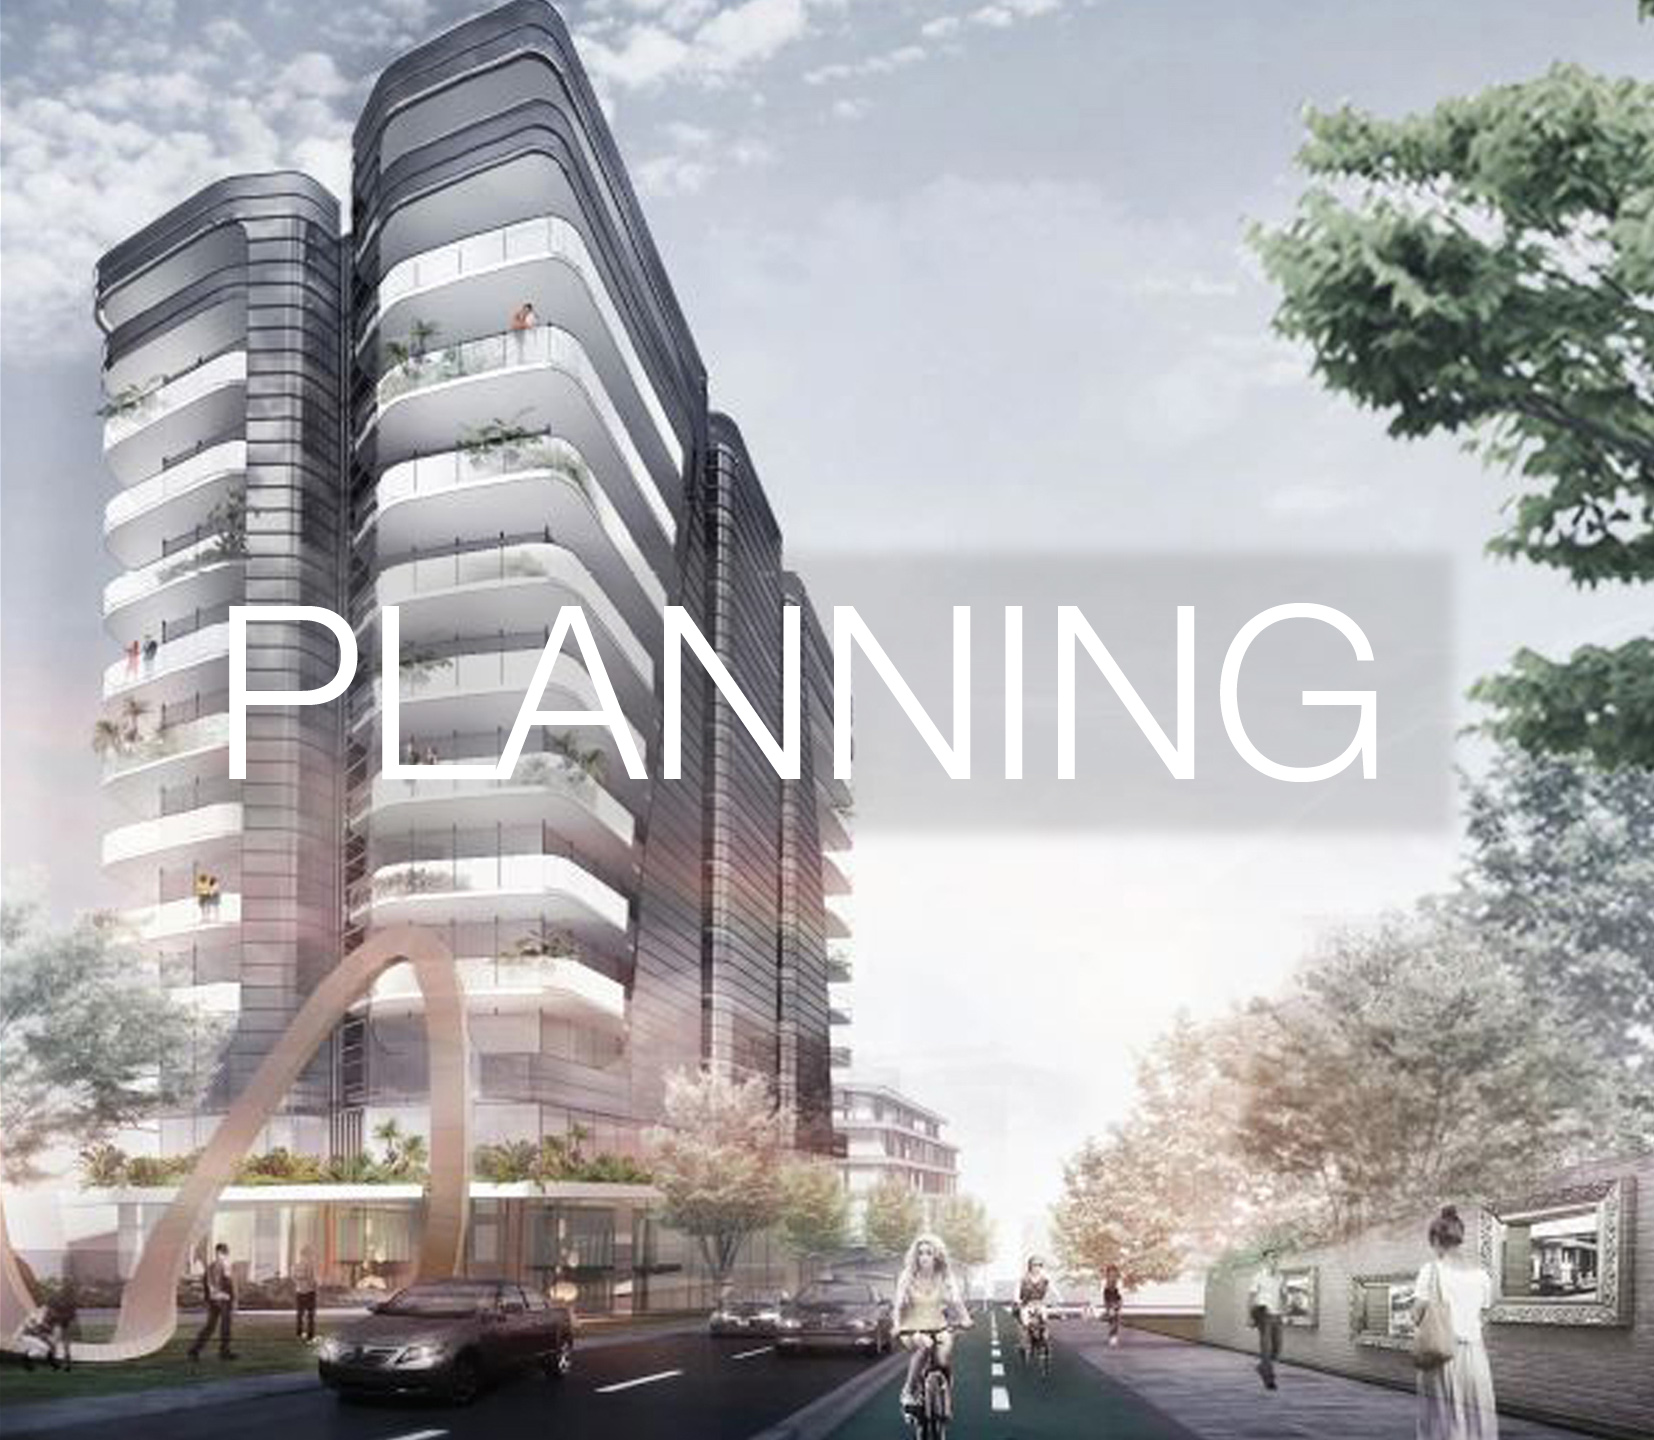 http://cityplan.com.au/planning-projects/